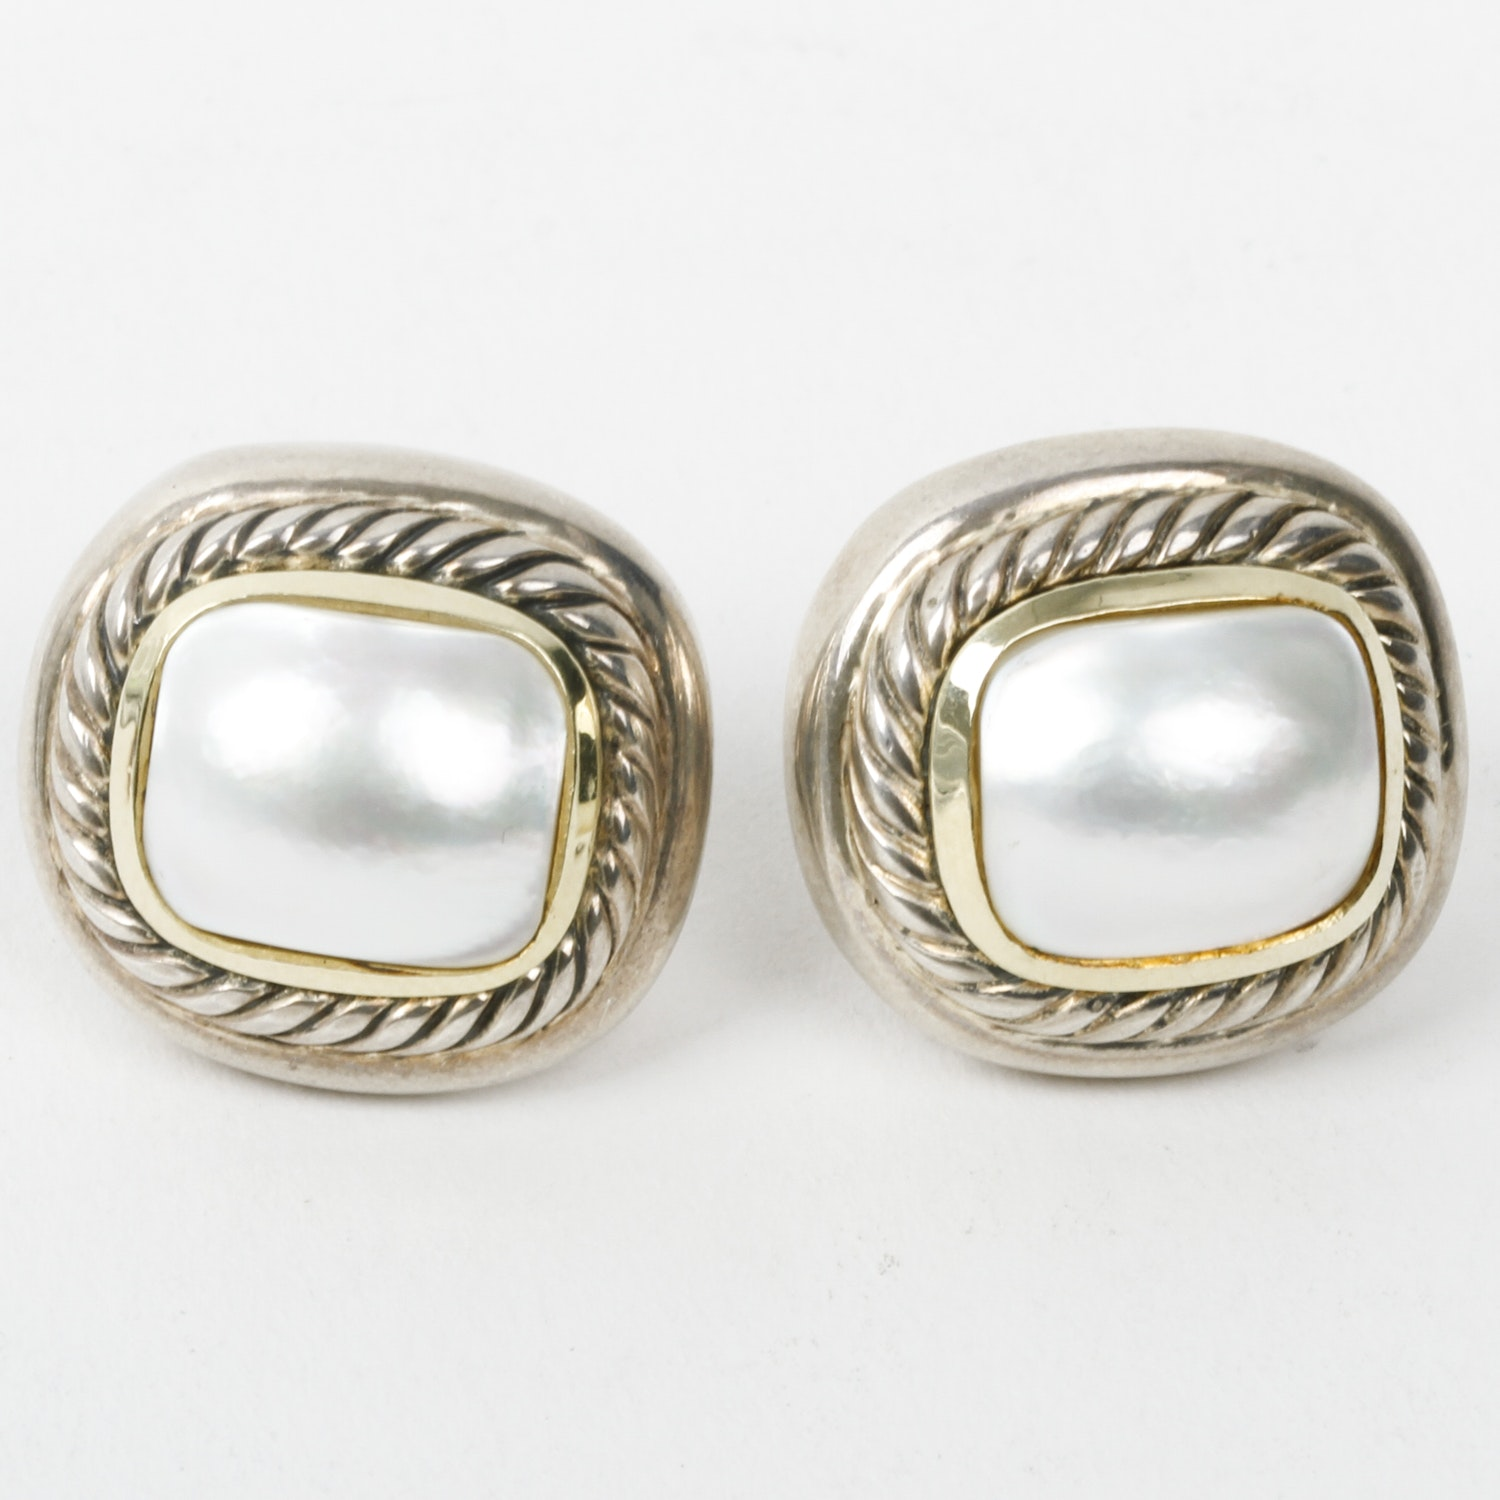 David Yurman Mother of Pearl, Sterling Silver, and 14K Yellow Gold Earrings